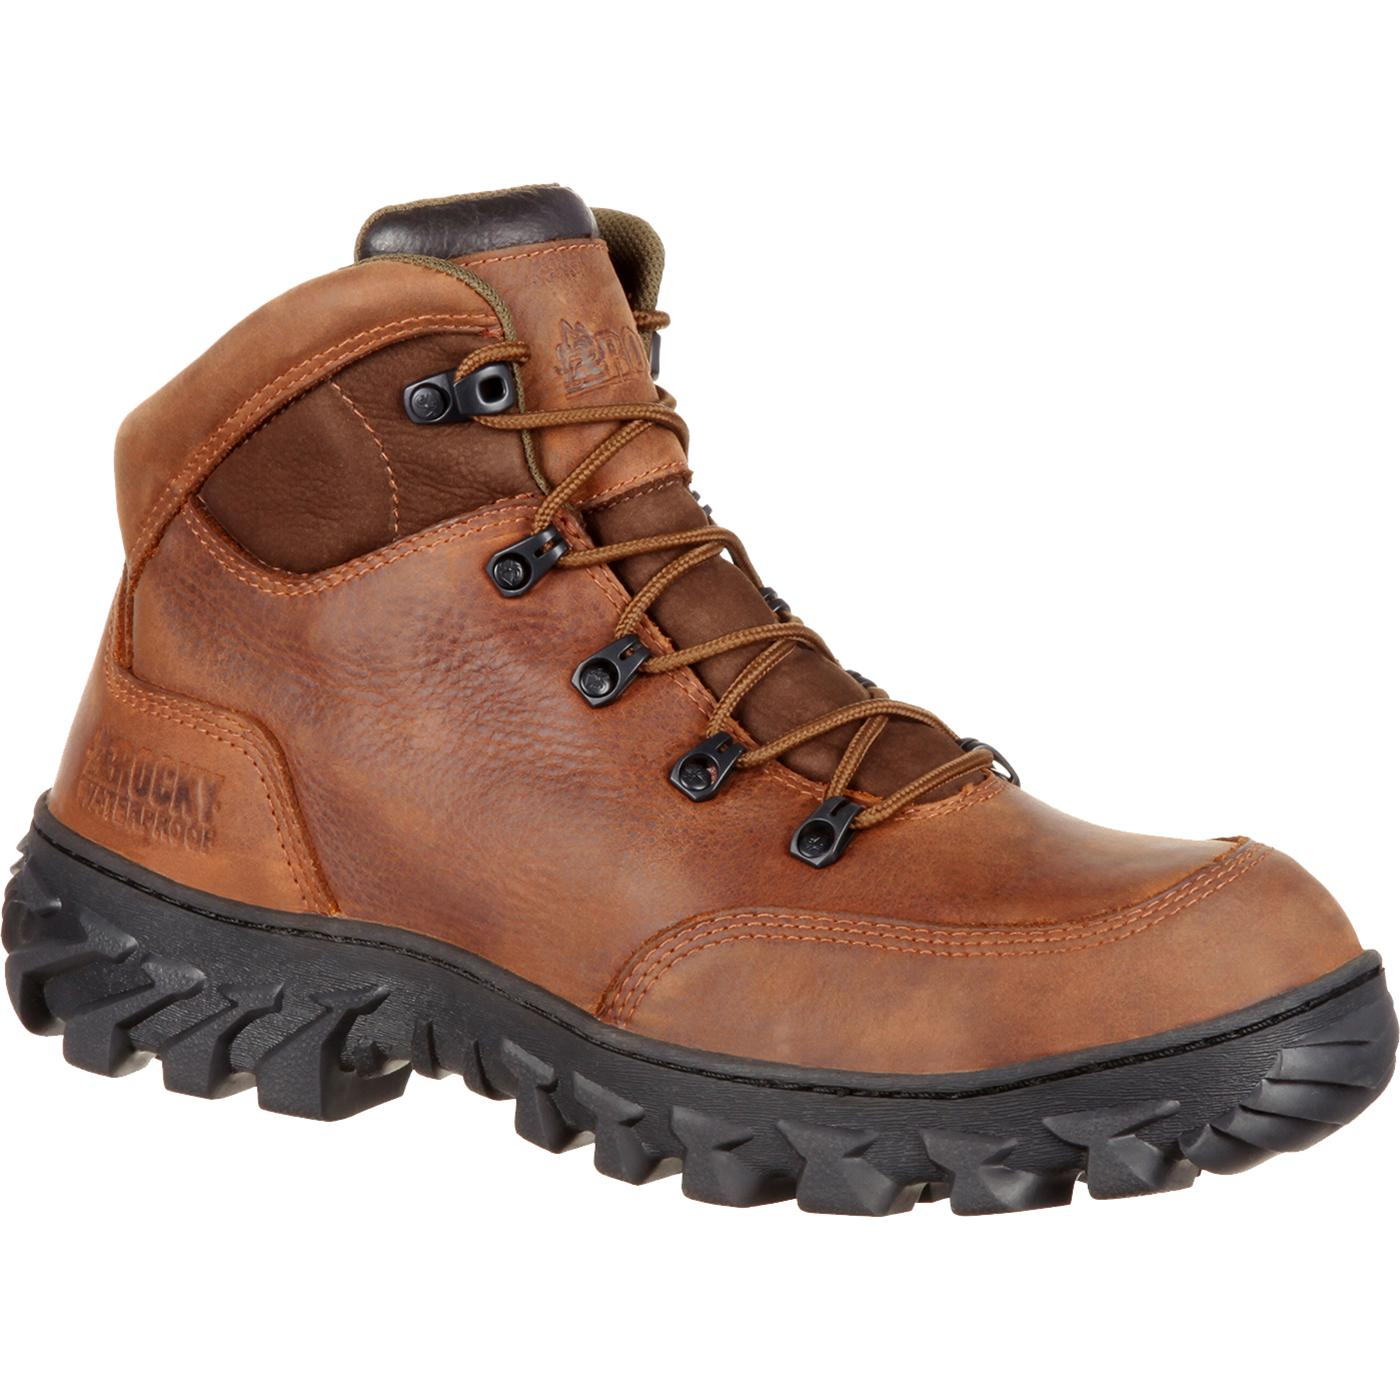 Rocky S2V Composite Toe Waterproof Insulated Work Boot (Men's) LtWQnLb